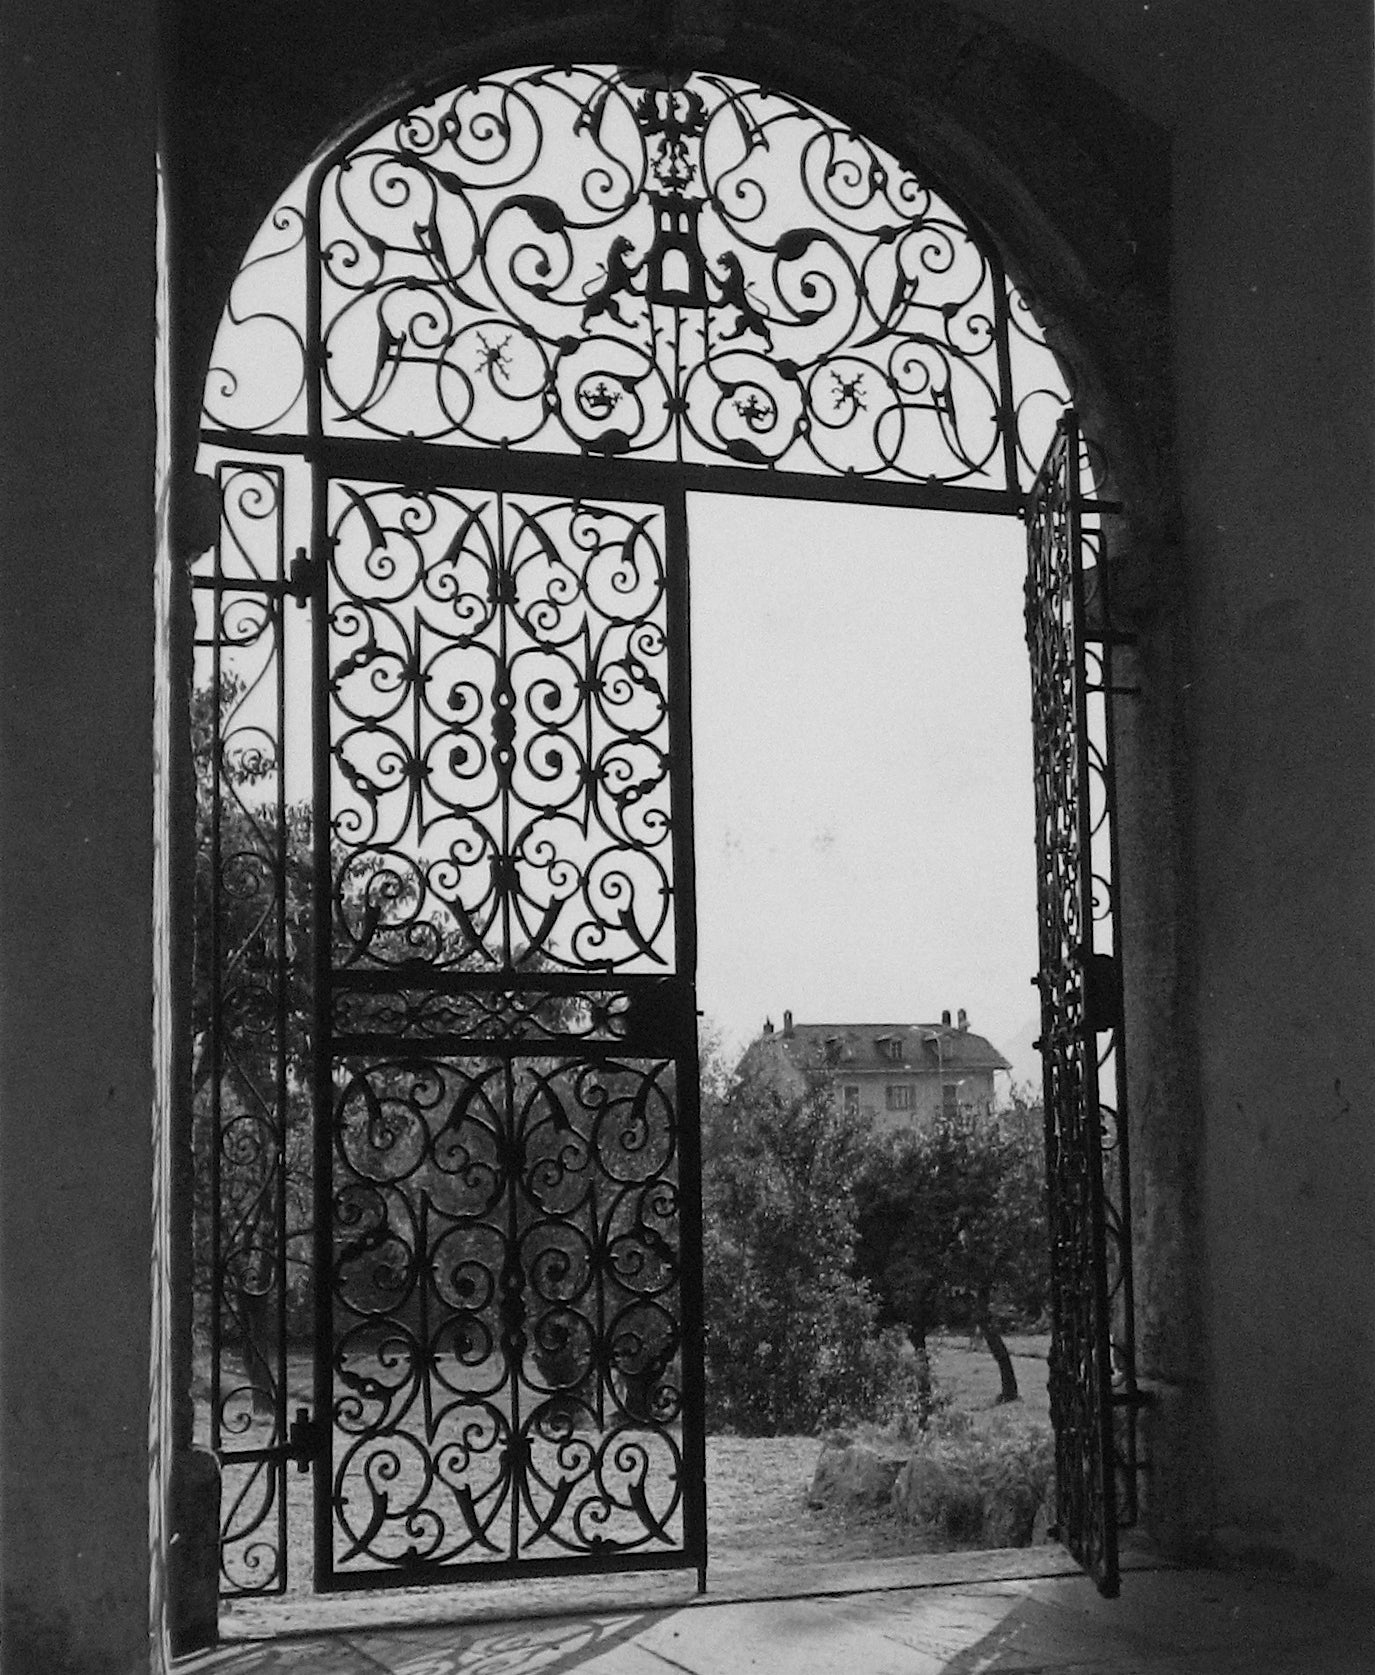 1960s Black and White Photograph of Roman Gate and Italian Grove with Chateau